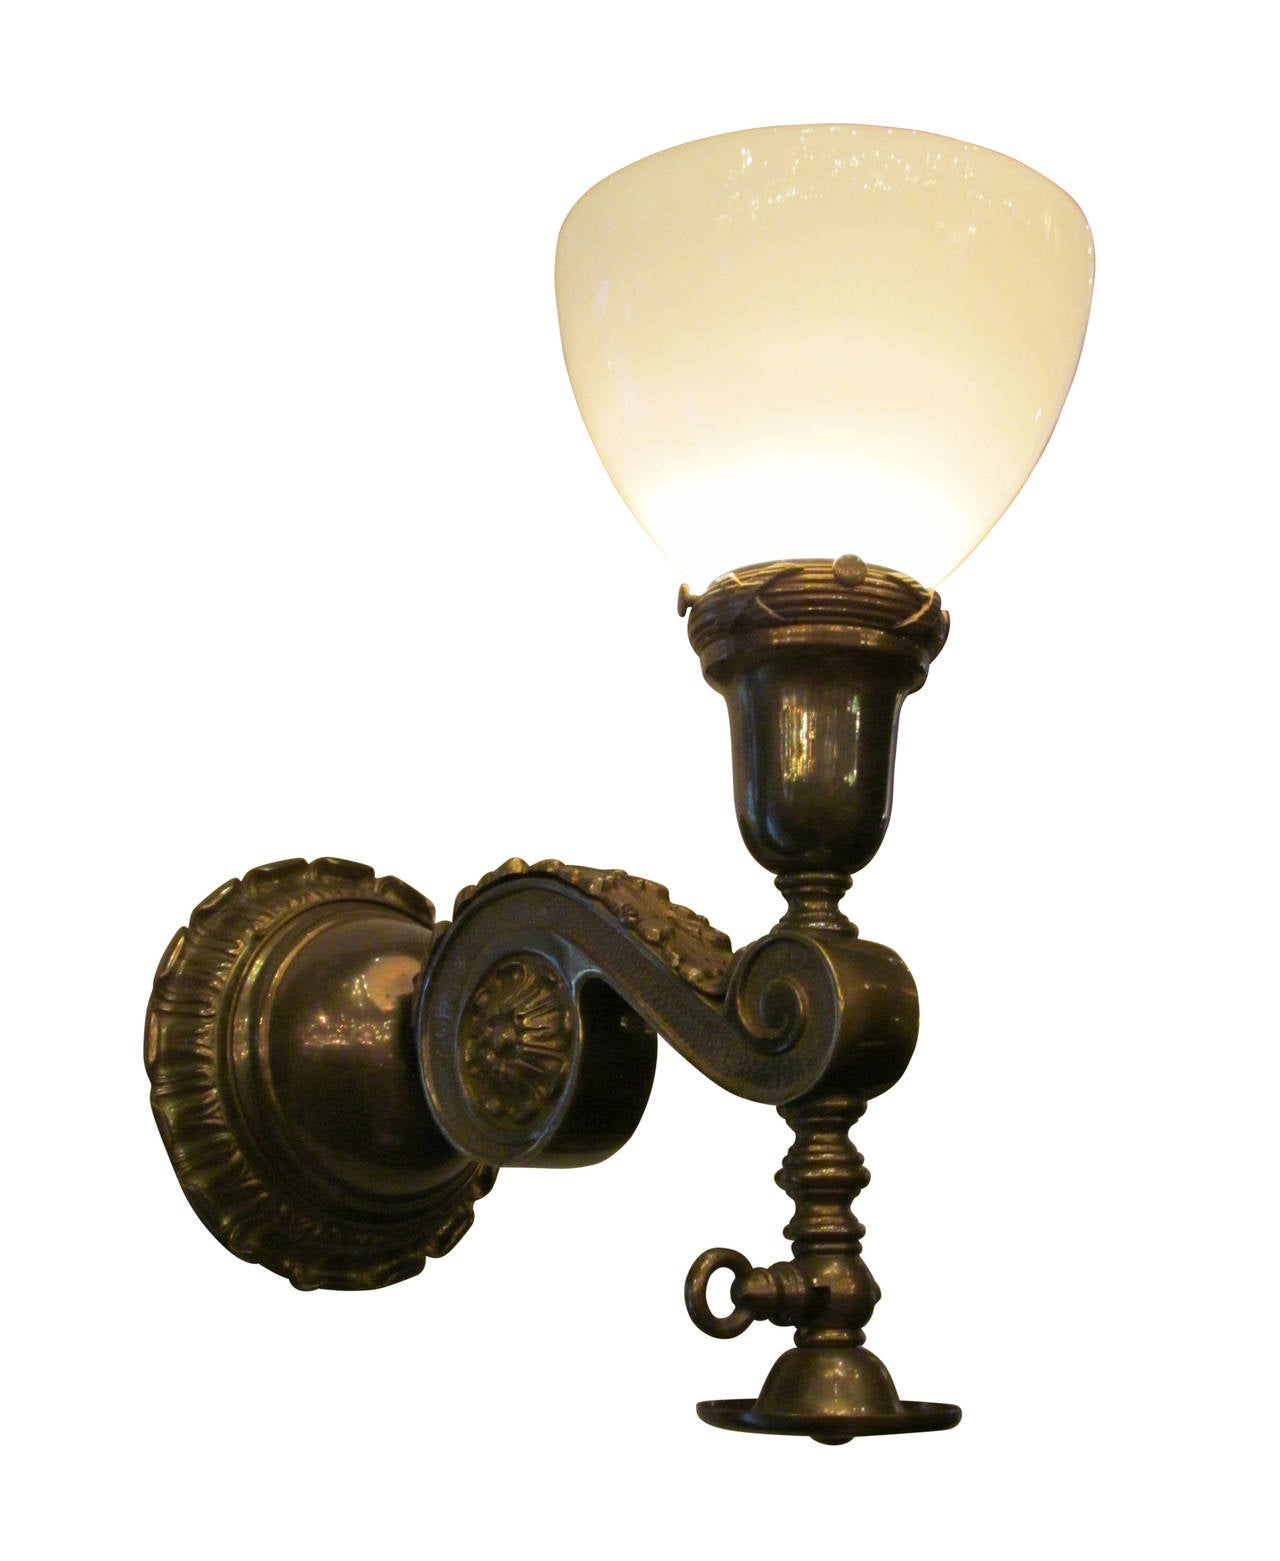 Pair of Milk Glass and Brass Gas Style Wall Sconces For Sale at 1stdibs